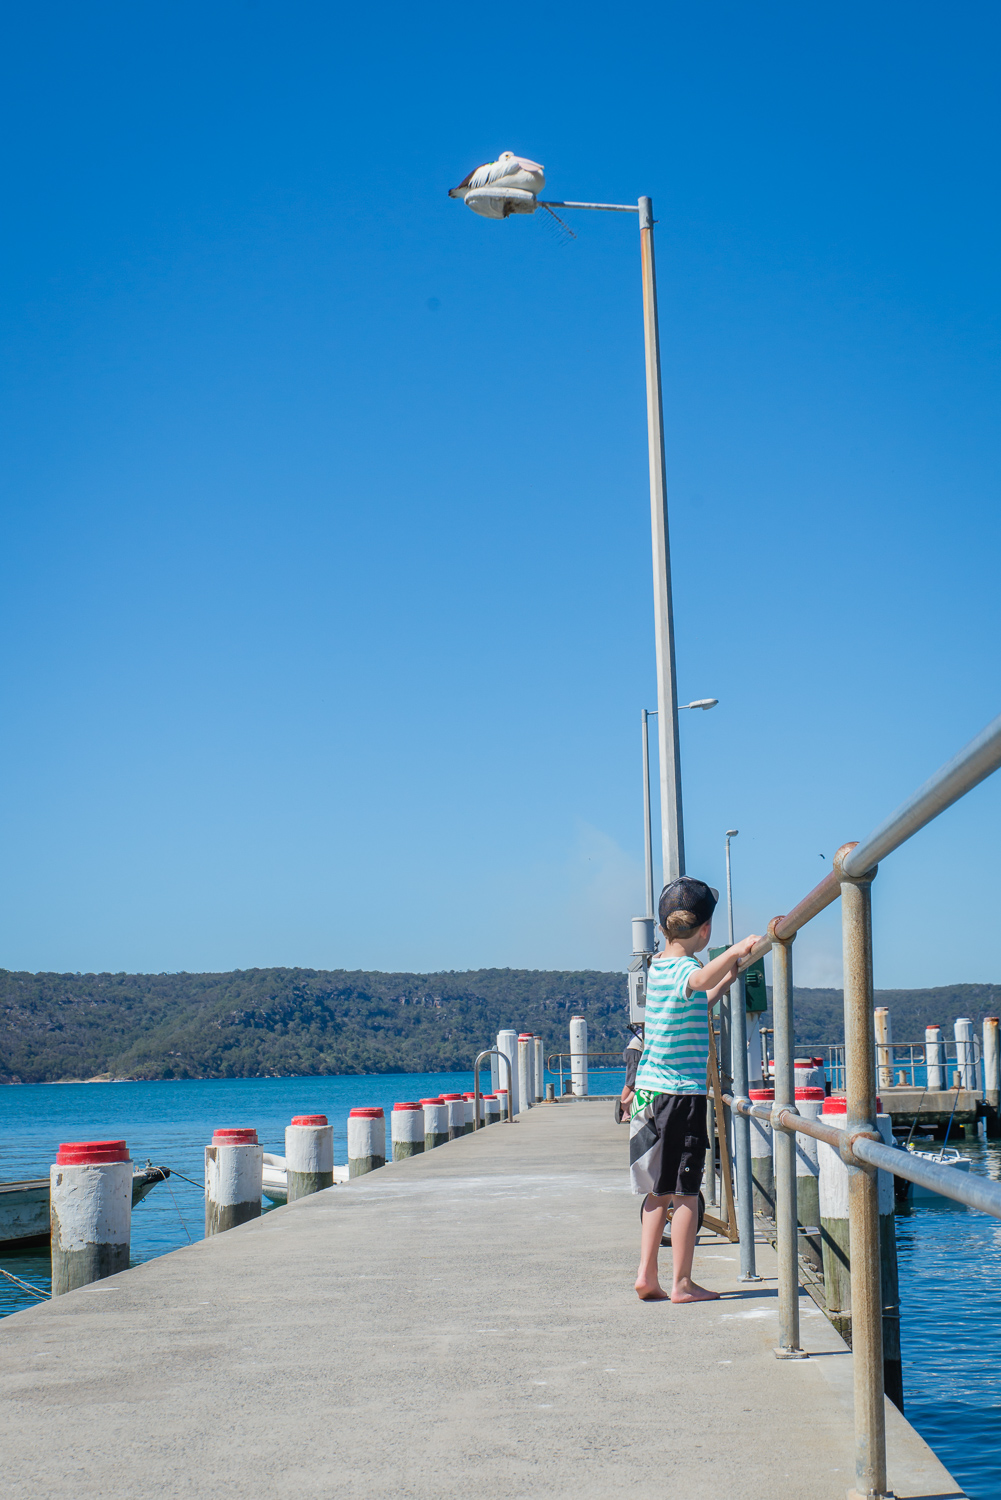 Mr 6 exploring the jetty